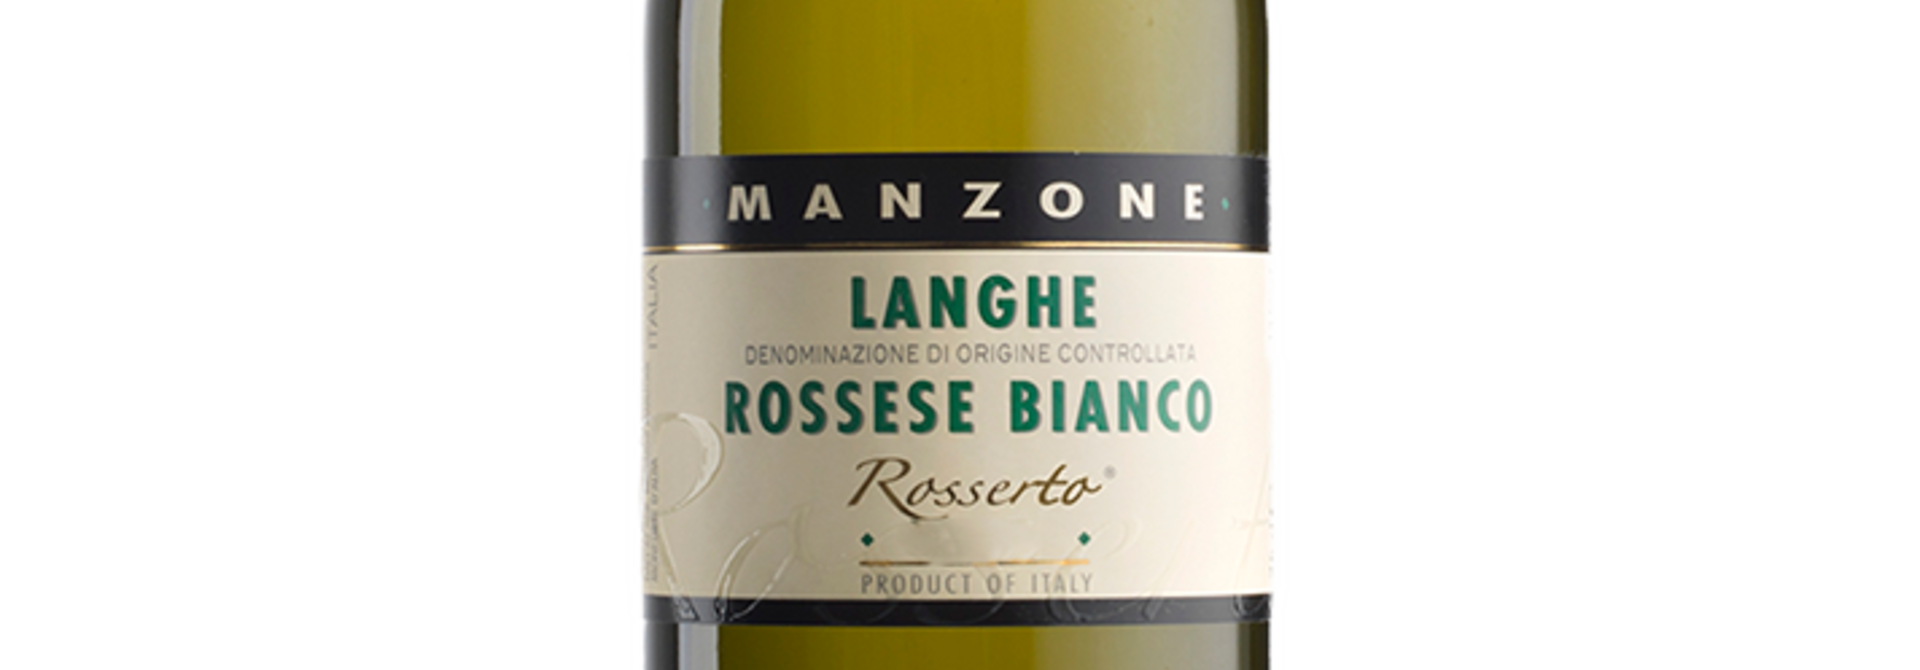 Langhe Rossese Bianco, Giovanni Manzone